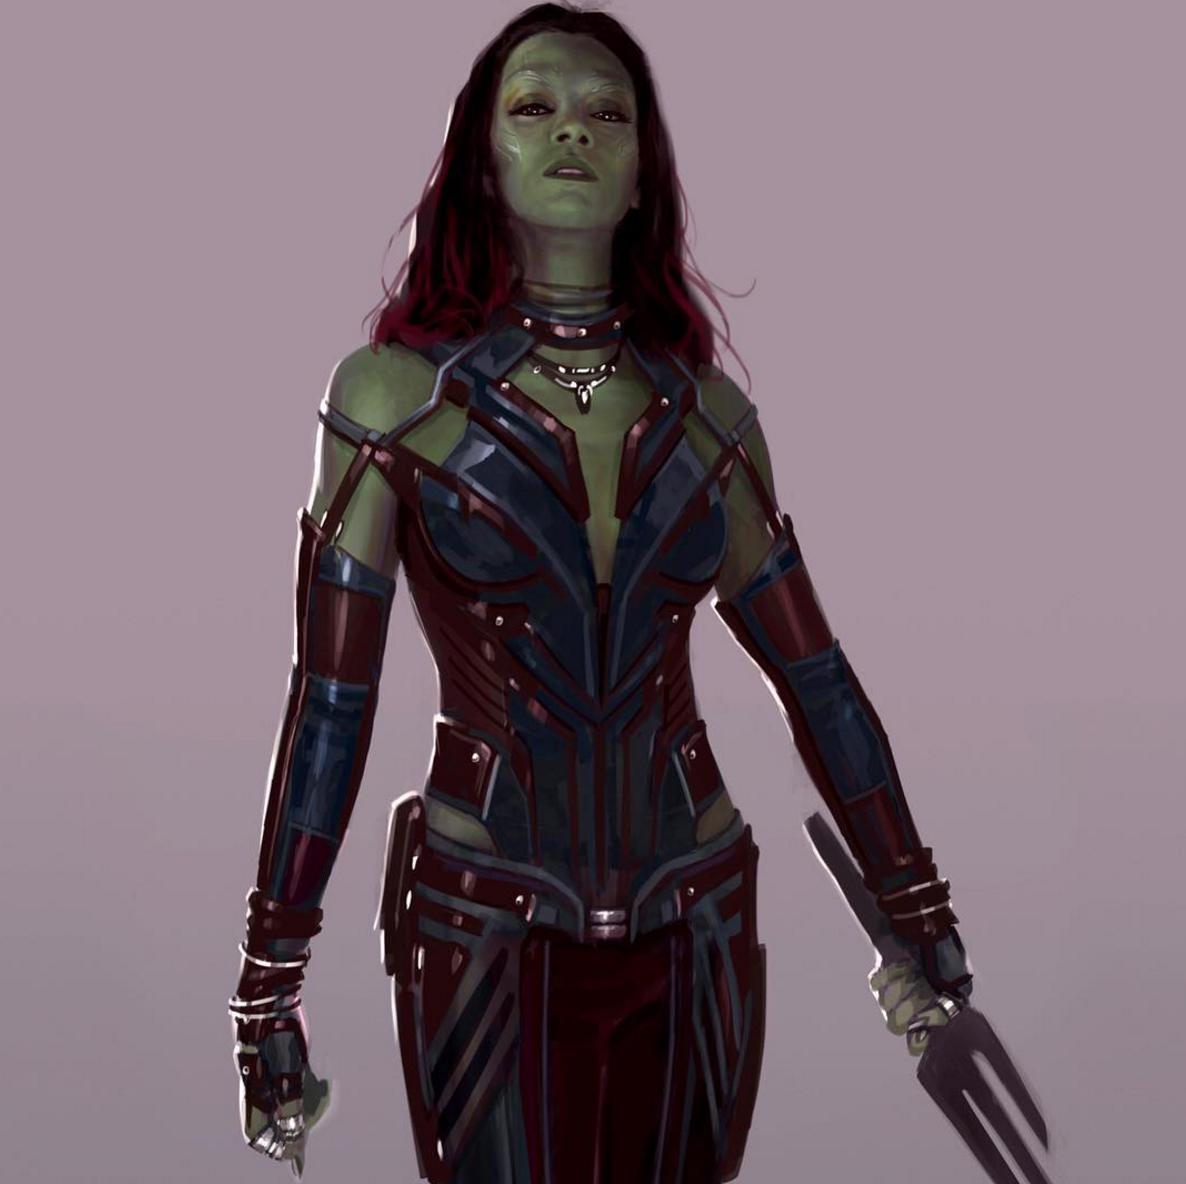 Stellar Artwork For Guardians Of The Galaxy Vol. 2 Unveils A More Comics-Faithful Rendition Of Gamora